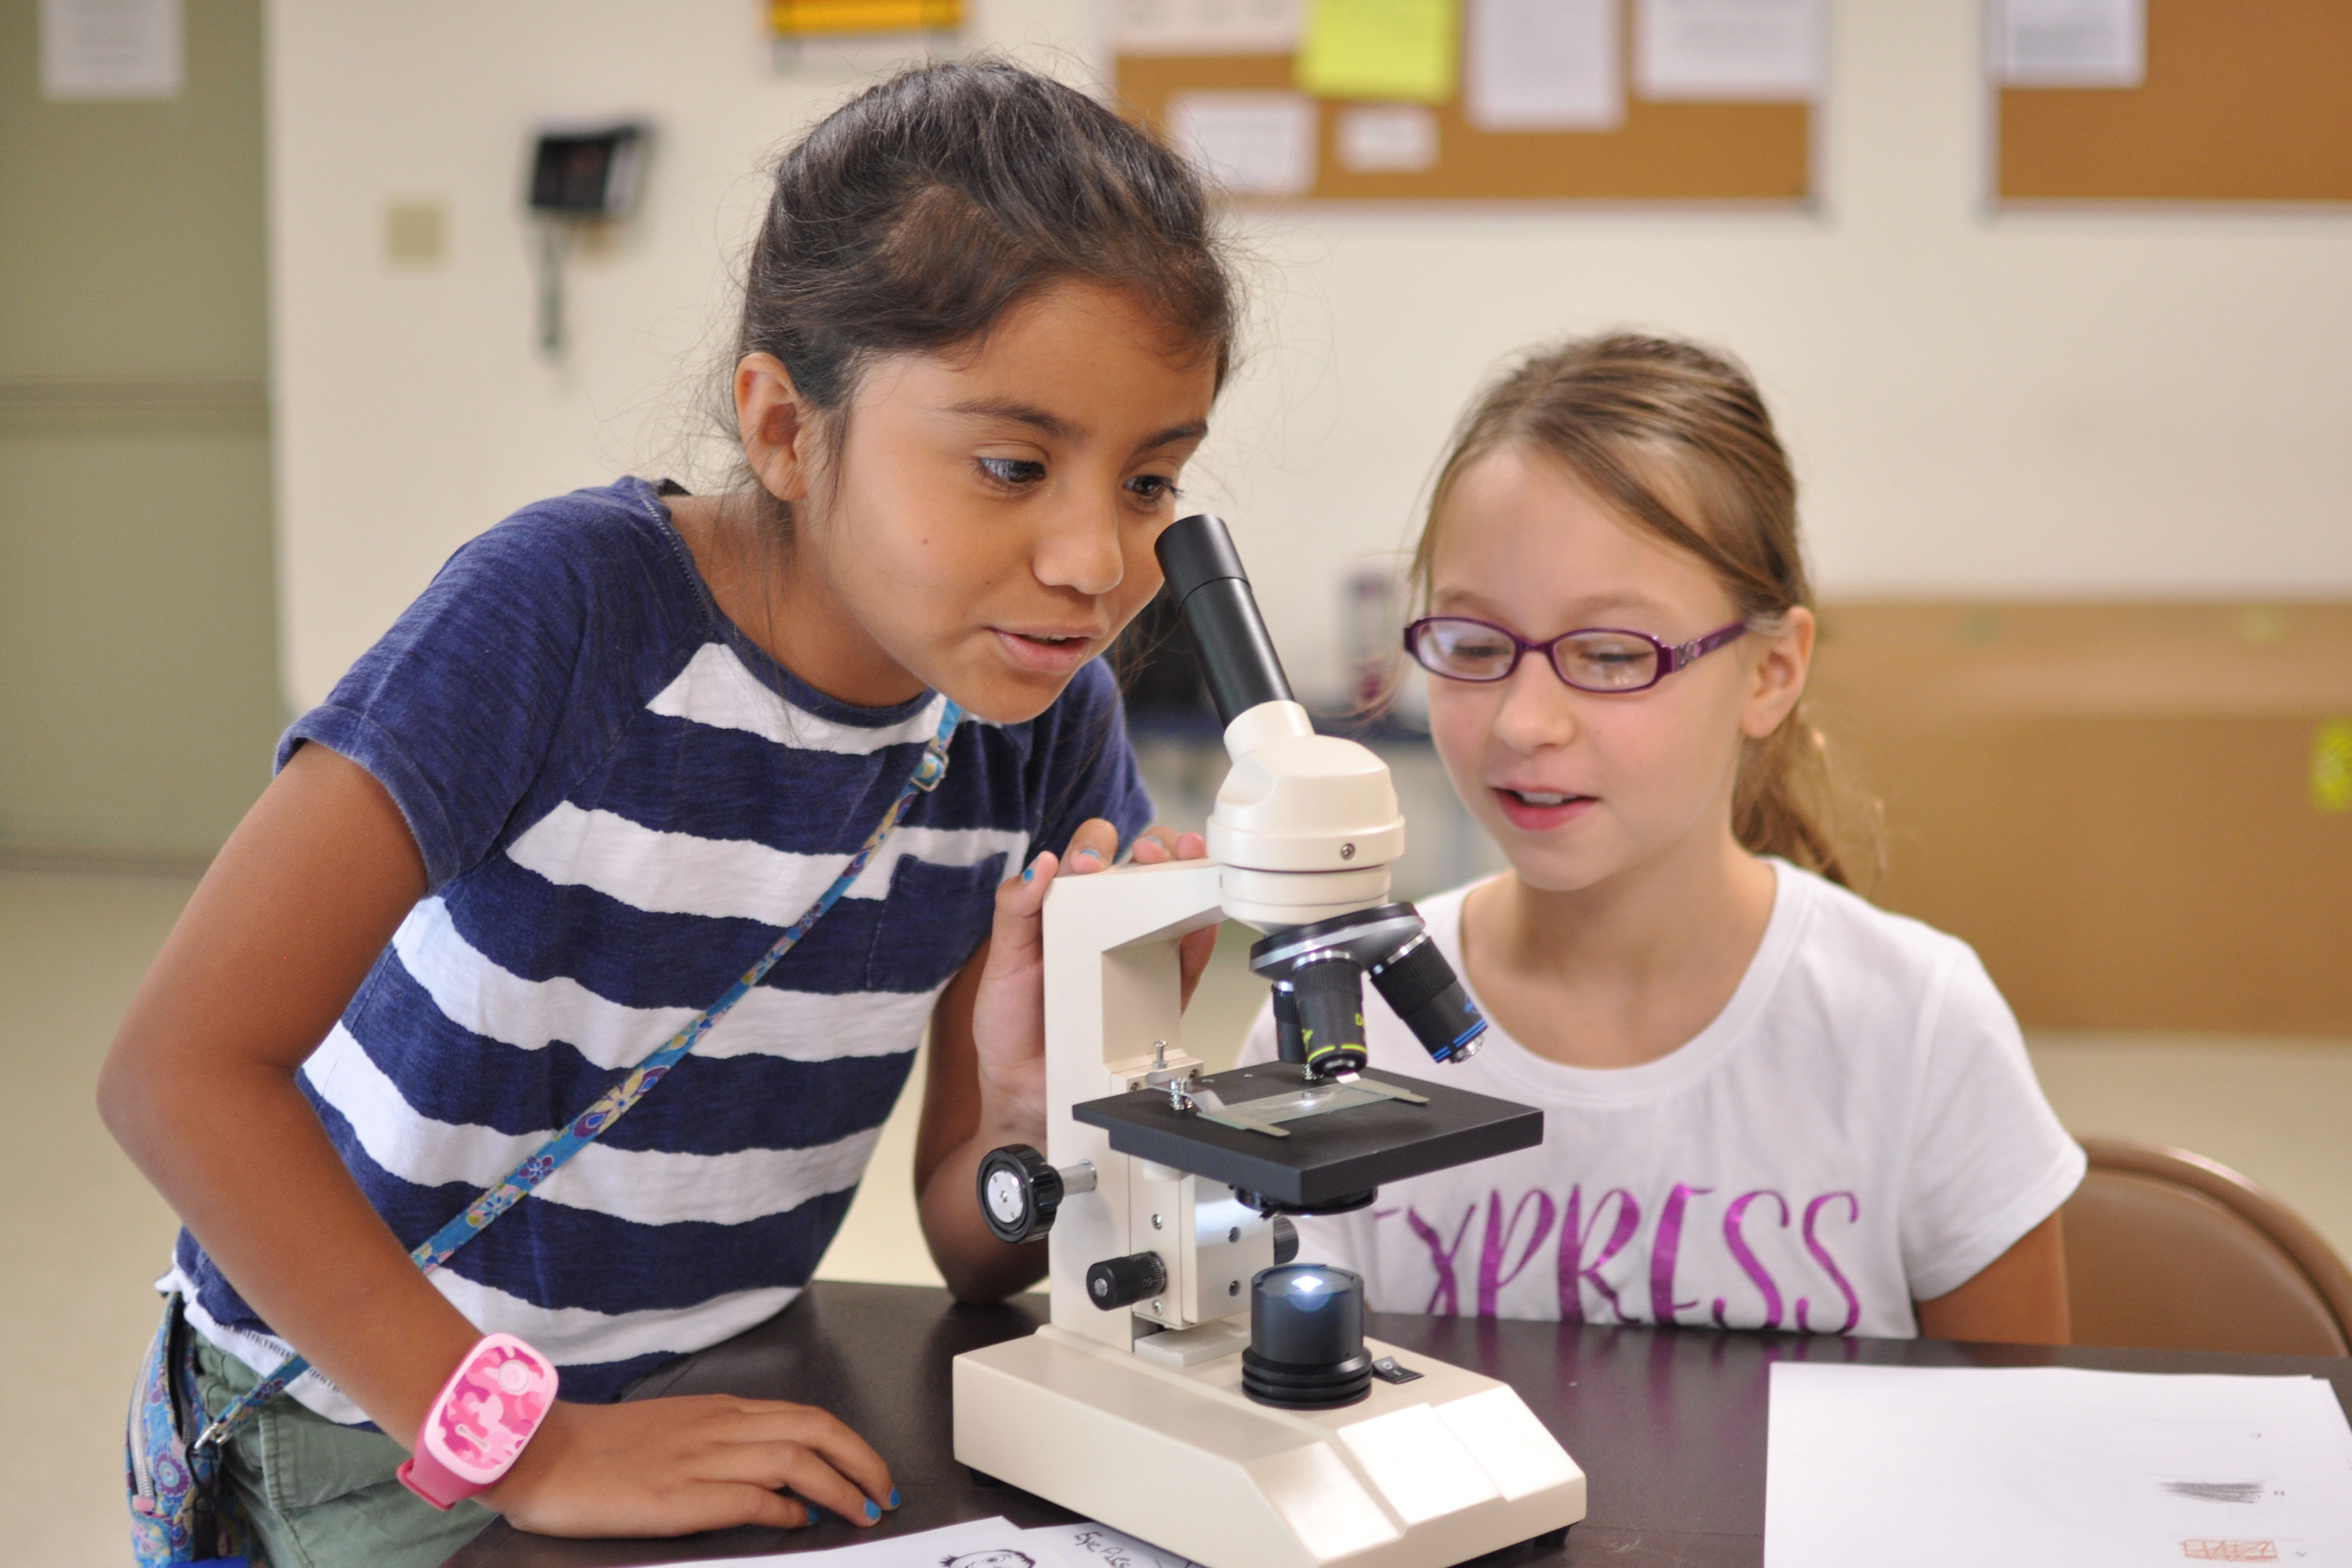 Aug 5, 2015-Marine Corps Base Quantico - Sofia, age 10, and Lael, age 11, take turns looking at hair fibers under a microscope, Photo By: Ida Irby, Public Domain